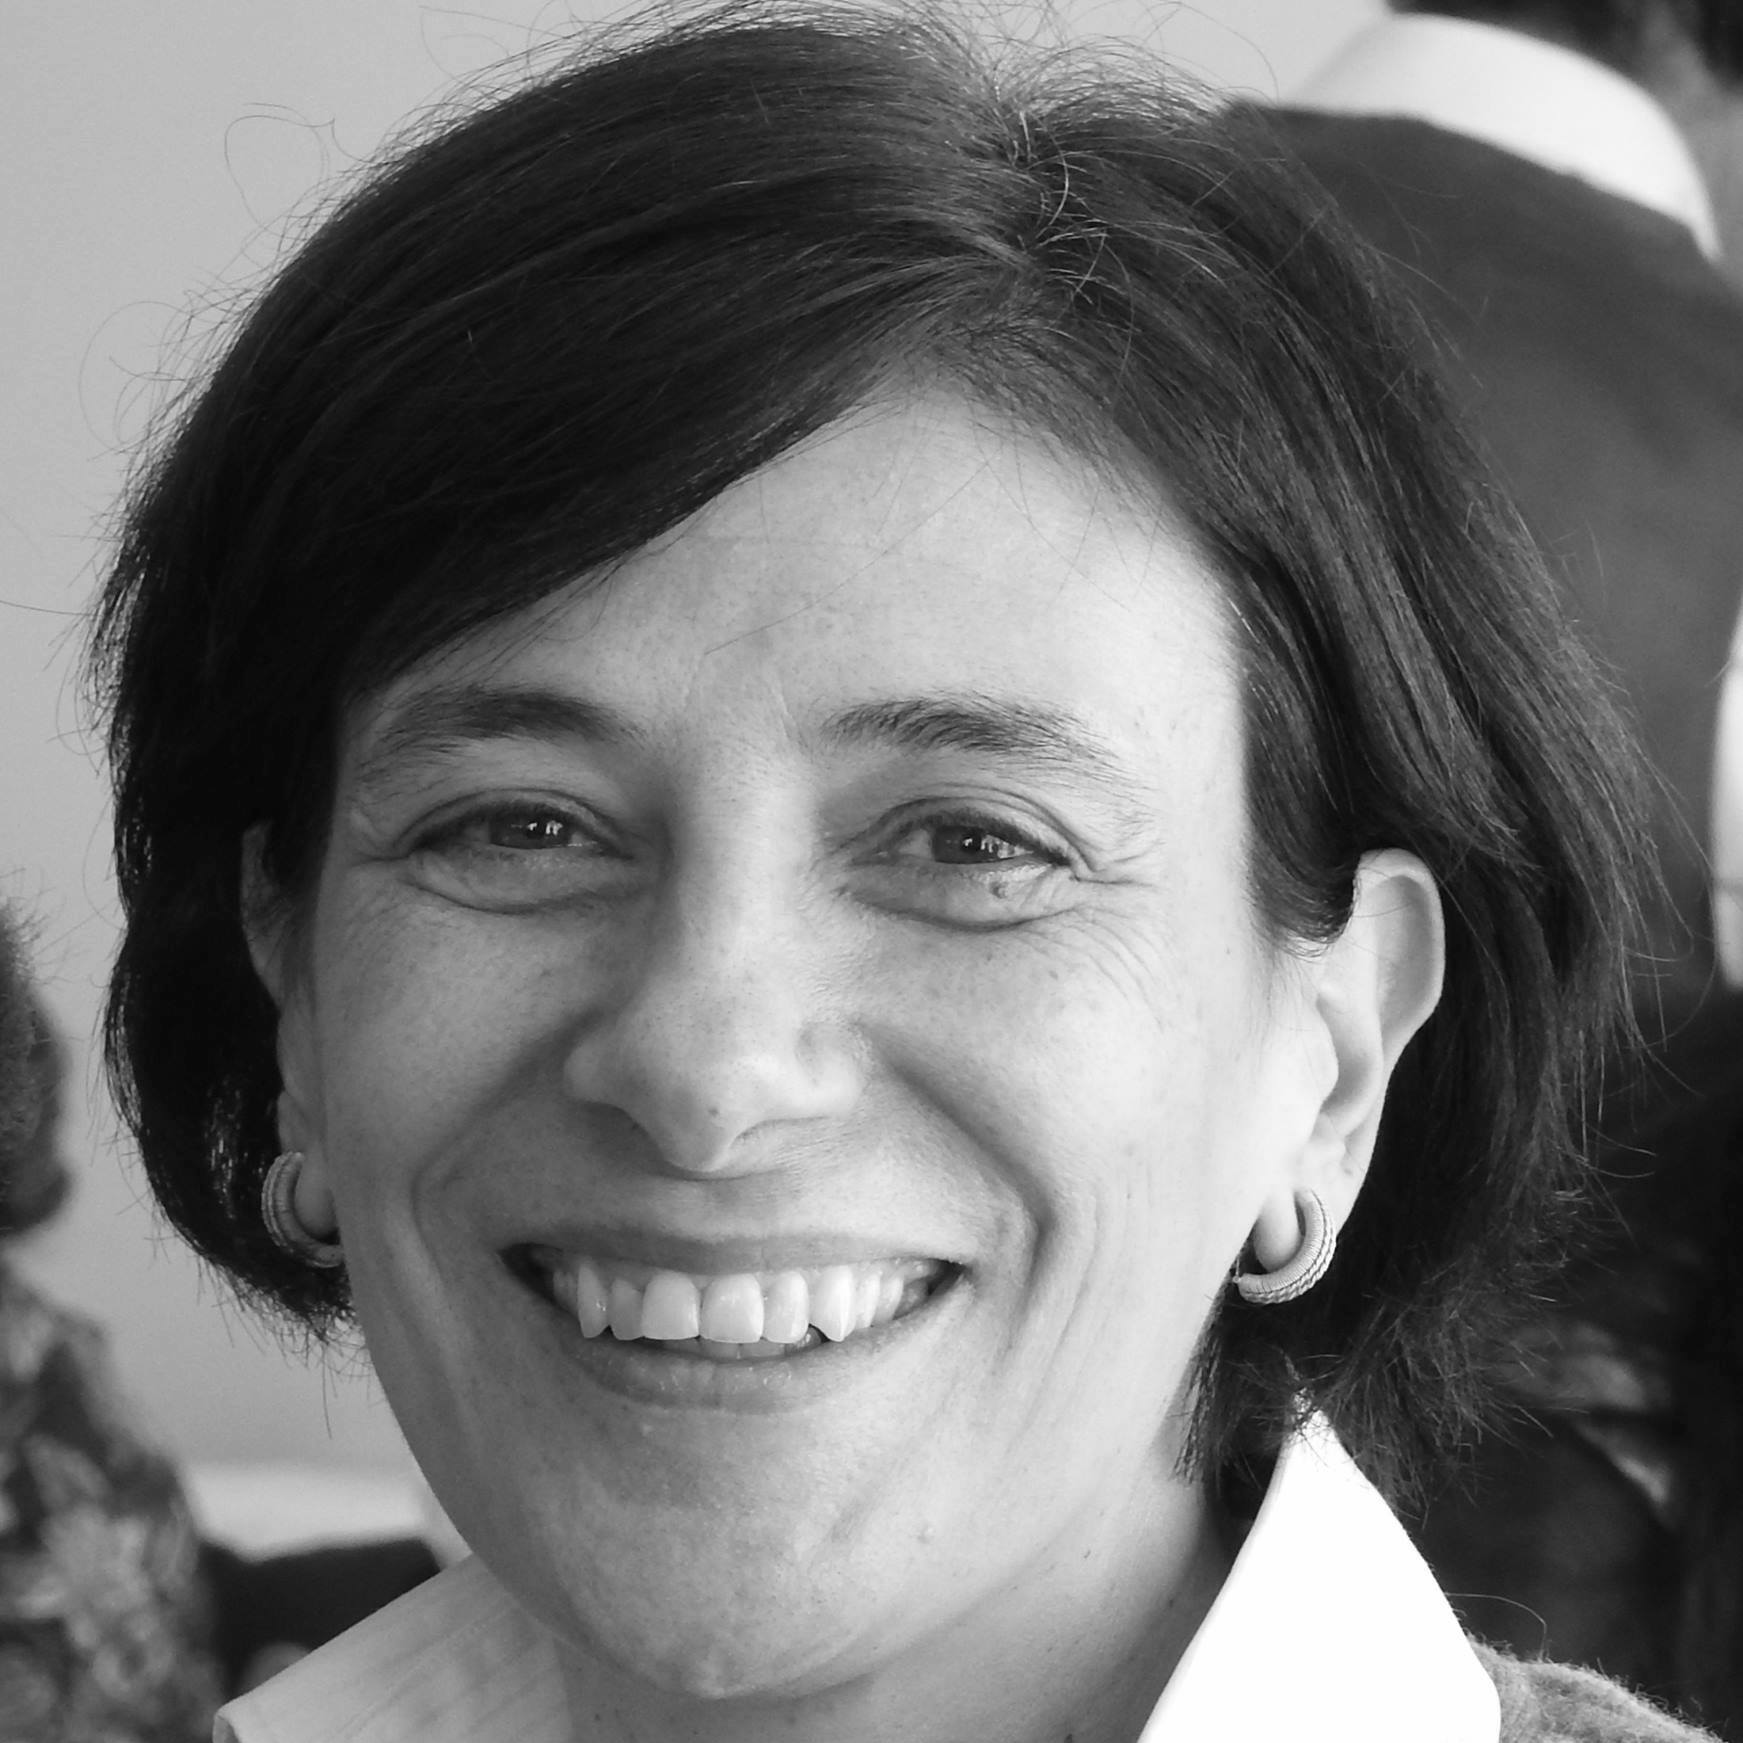 Luísa Magalhães: Lecturer in Chair at Universidad Complutense de Madrid